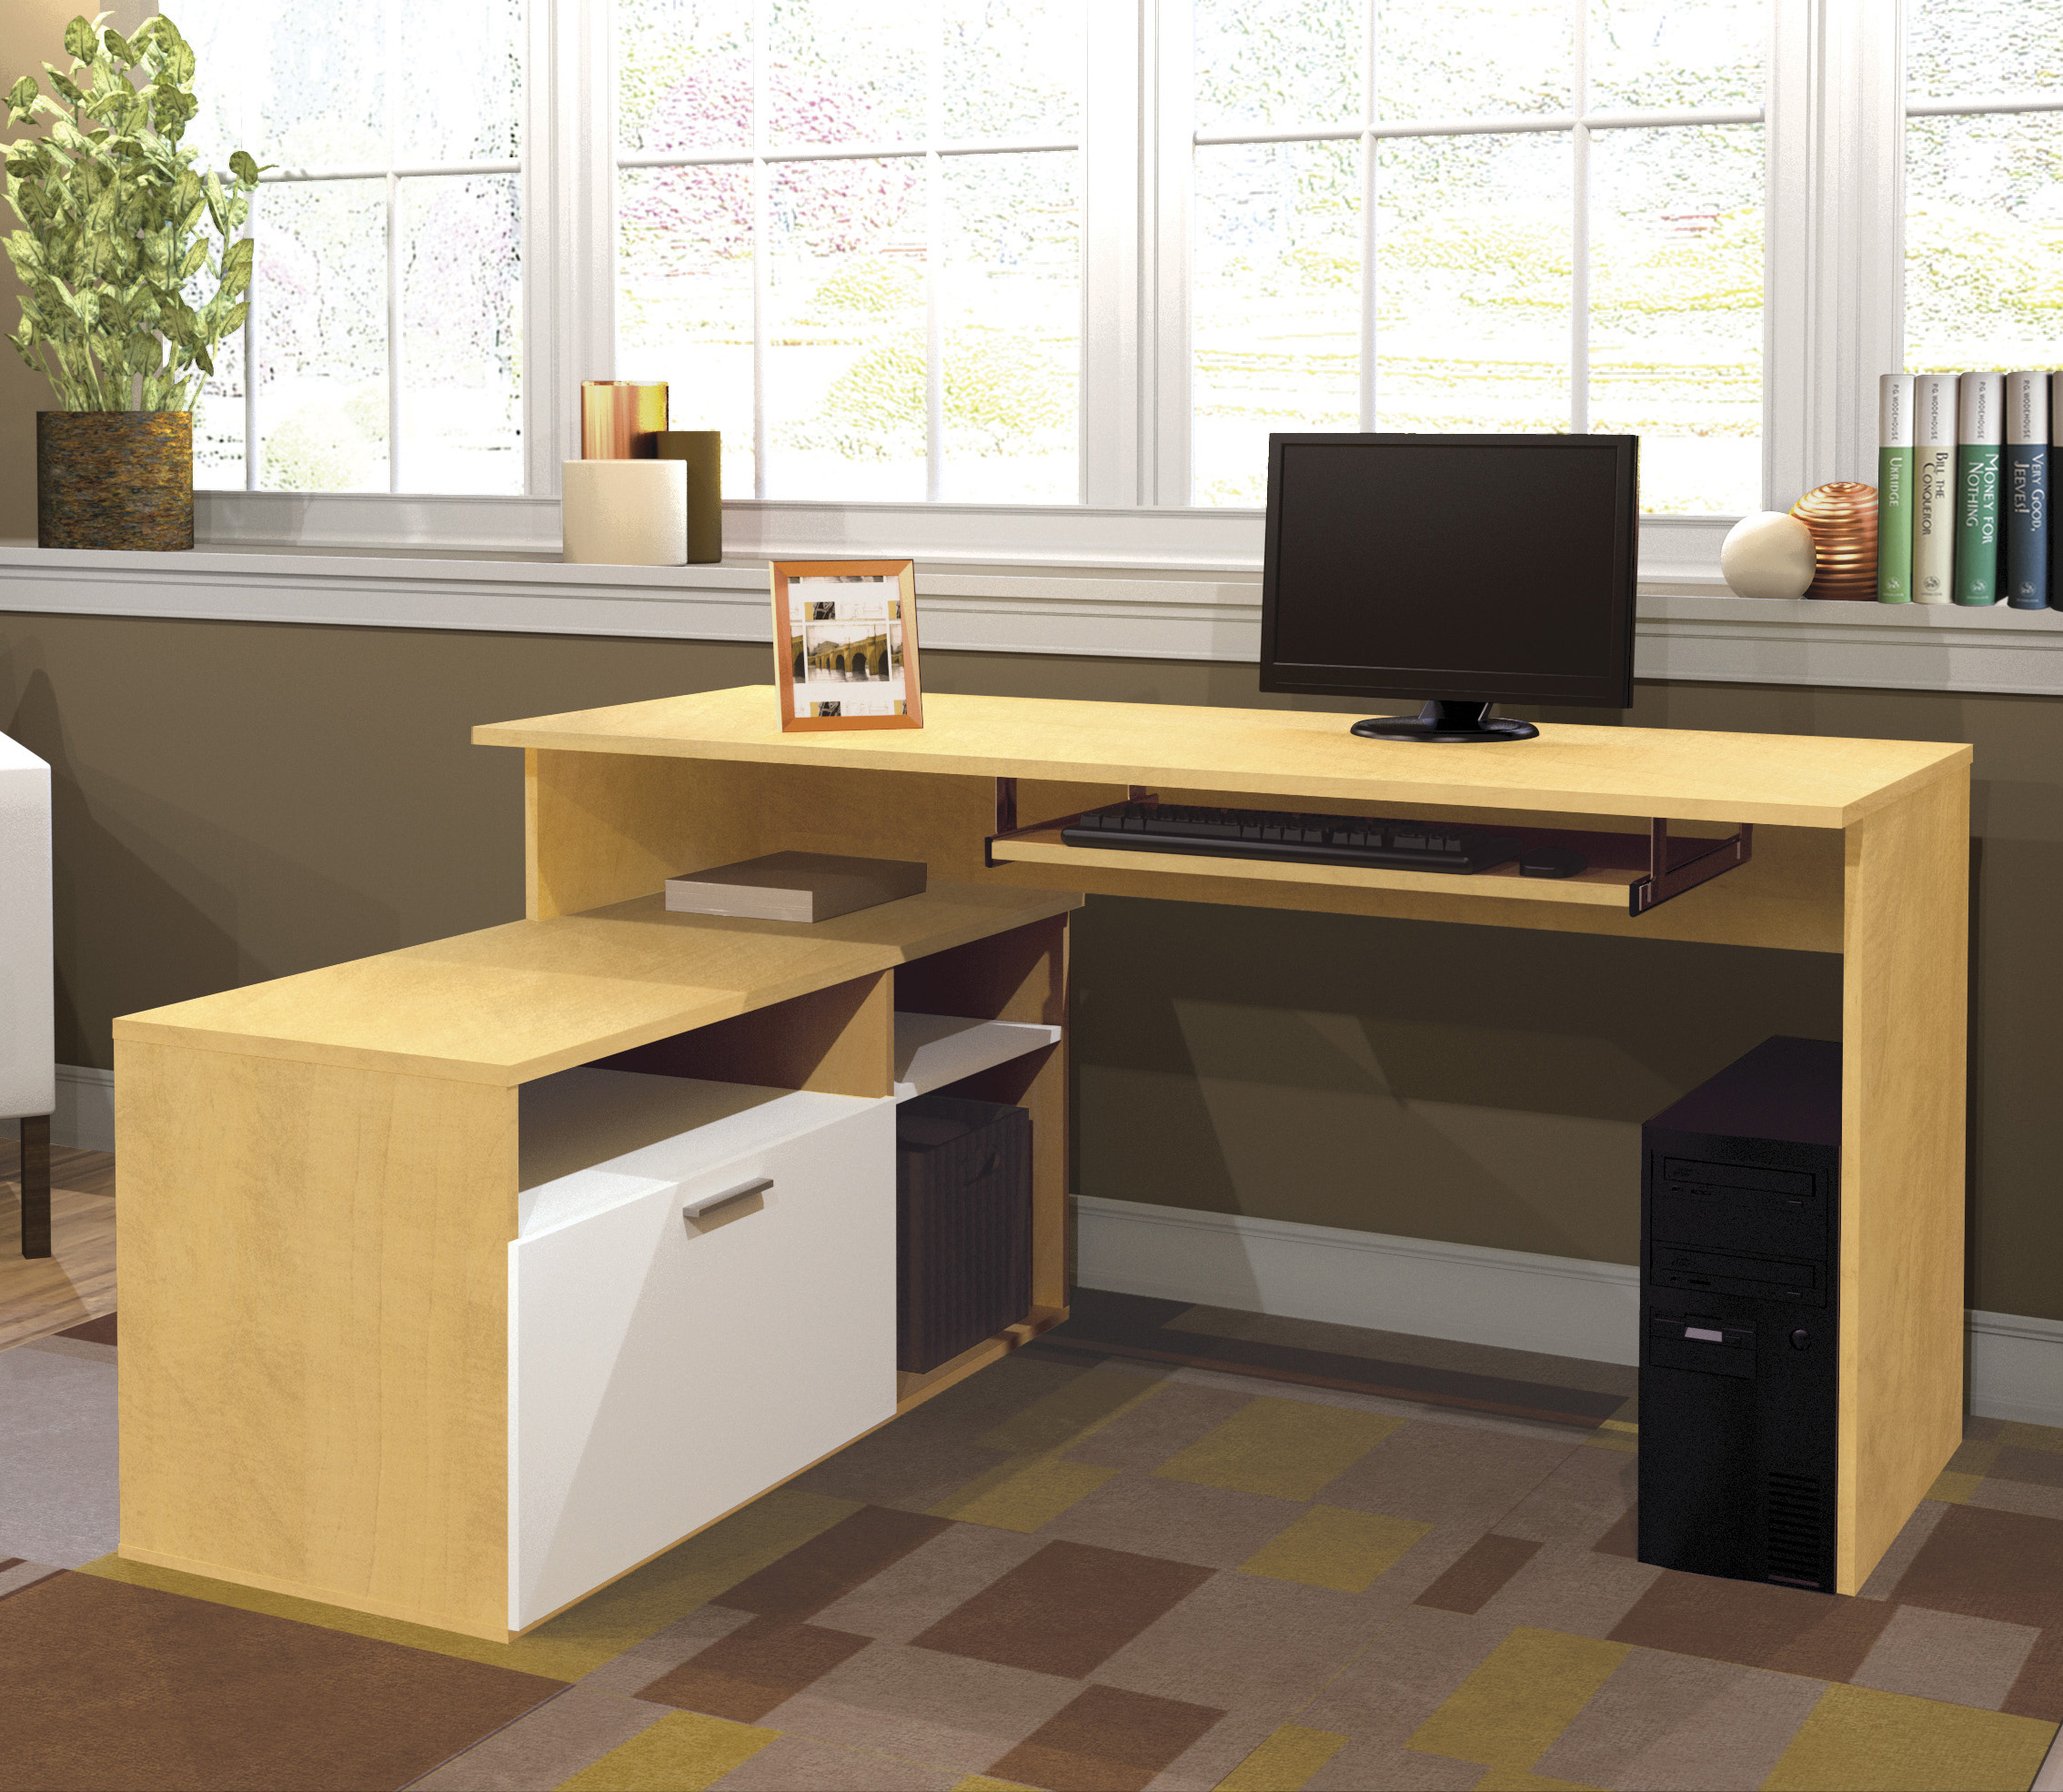 Khaki L Shaped Desk With Hutch And Drawer Plus Computer Stand On An Office  Home Room